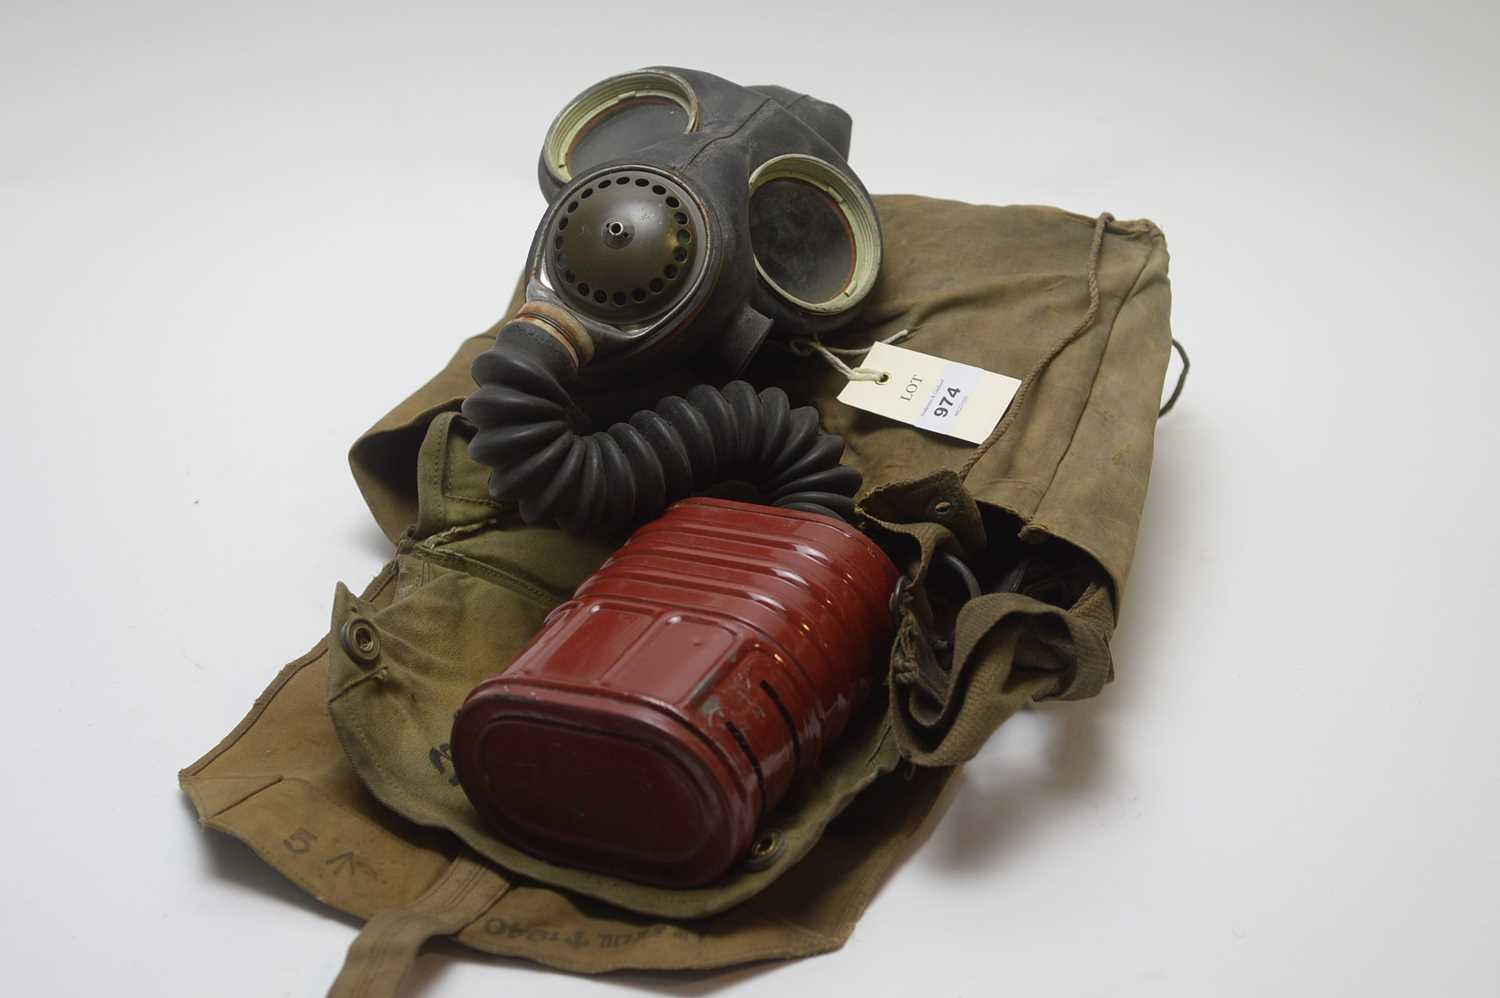 Lot 974 - A WWII  1940s gas mask with original carry bag